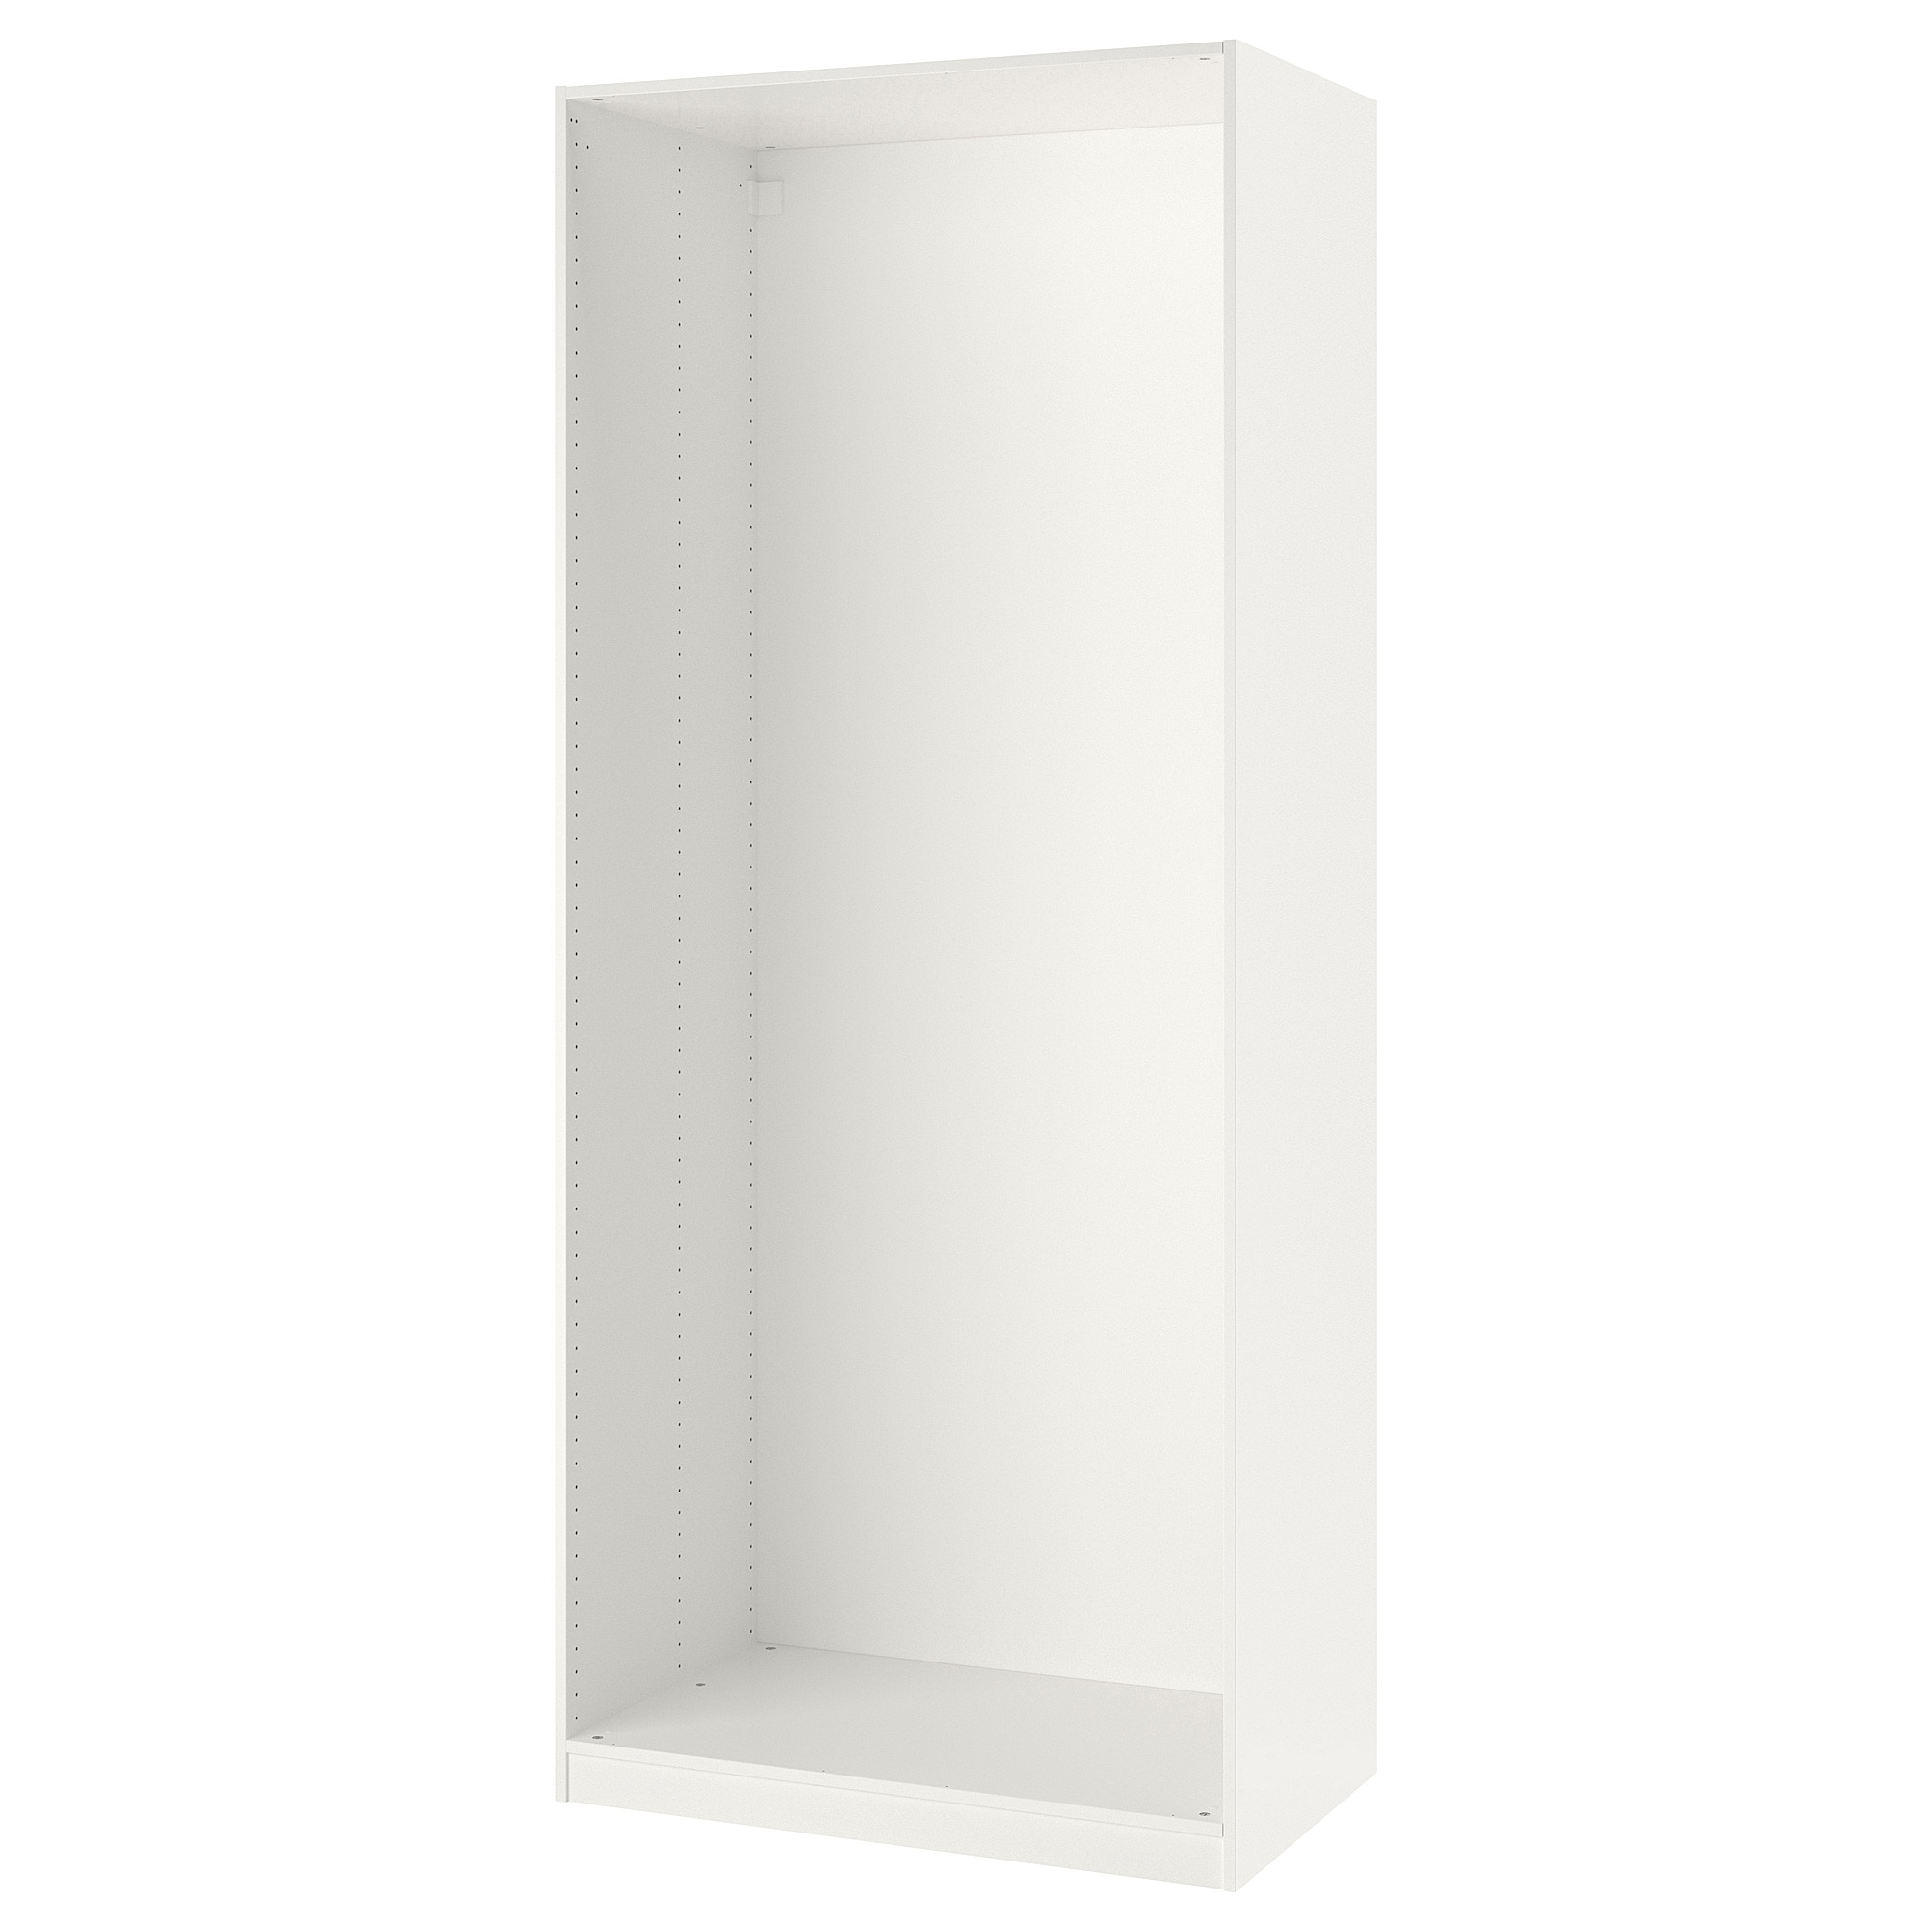 Ikea Wardrobe Leaning To One Side Wardrobe Frame Pax White